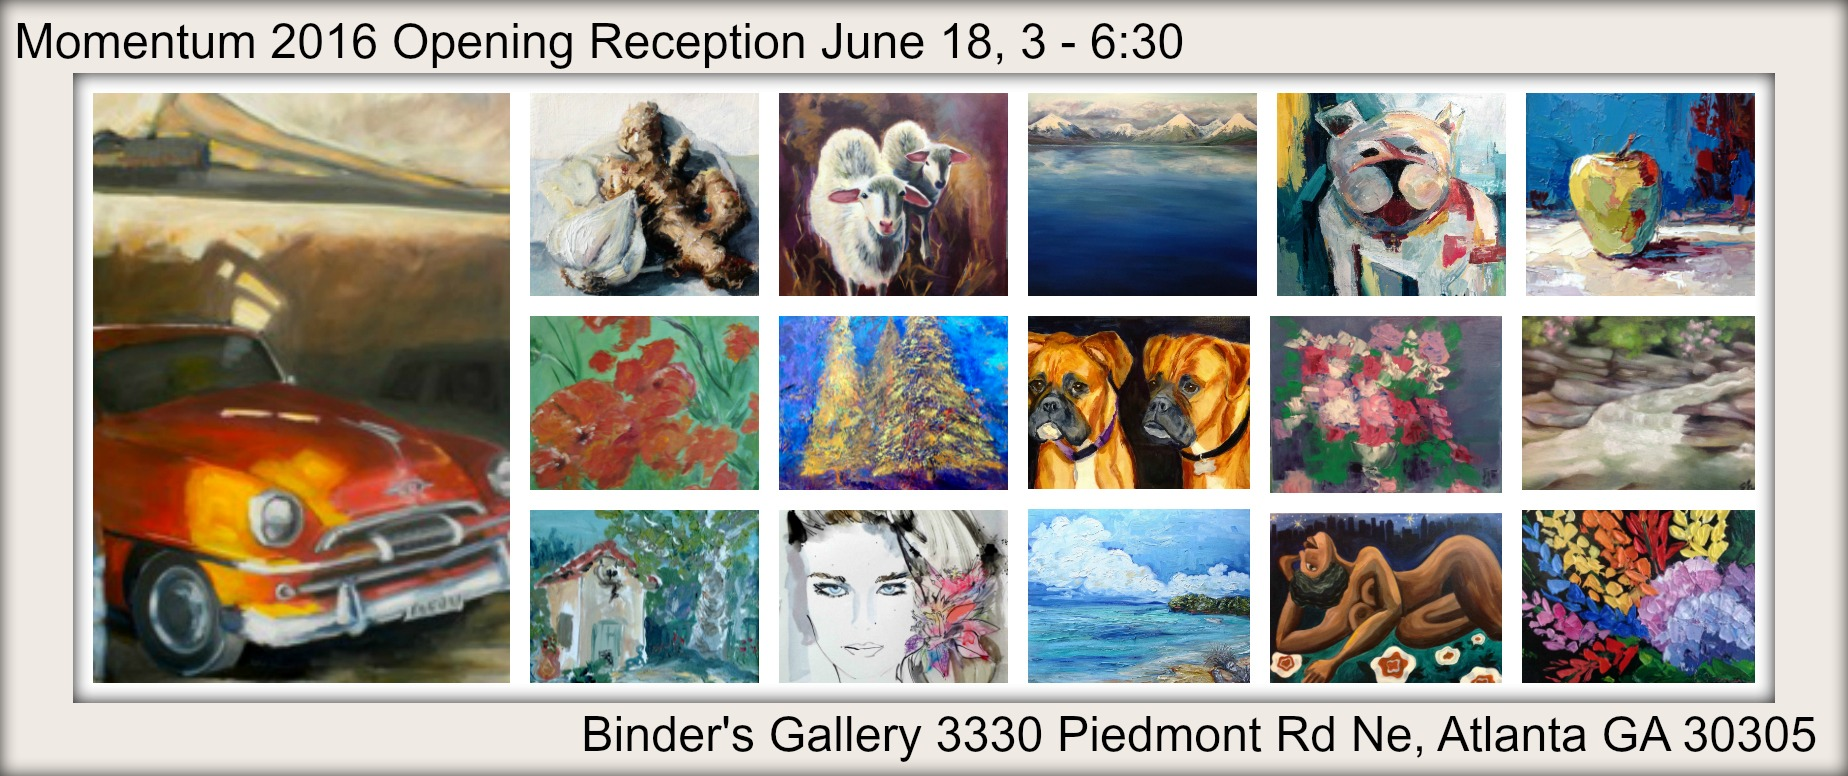 Stop by and see the wonderful art created by 19 local artists